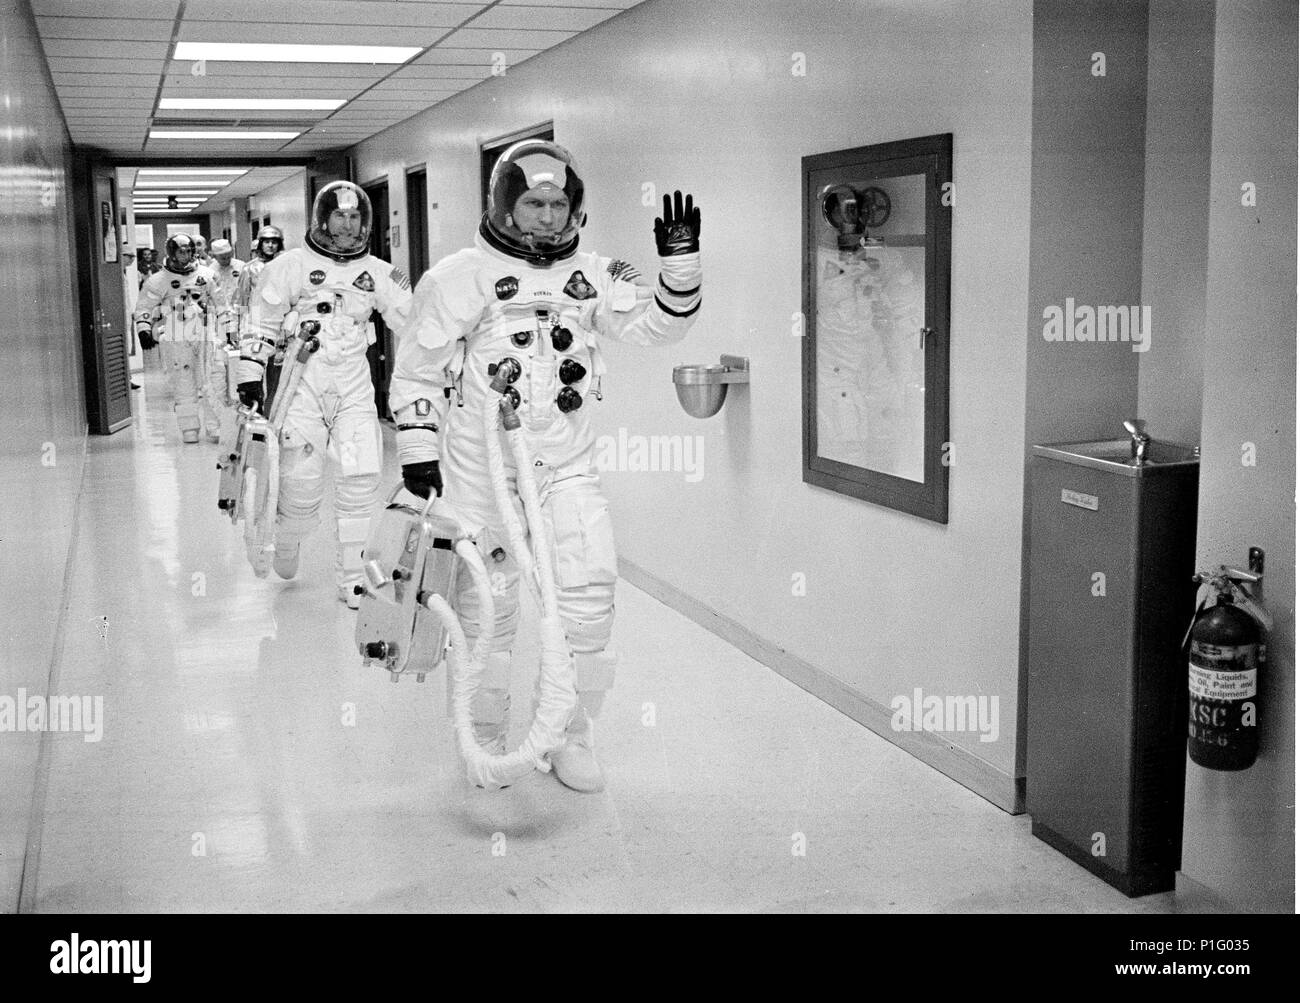 COMMANDER FRANK BORMAN LEADS THE WAY FOR FELLOW ASTRONAUTS LOVELL AND ANDERS AS THEY LEAVE FOR THE LAUNCHPAD FOR APOLLO 8 MISSION - Stock Image